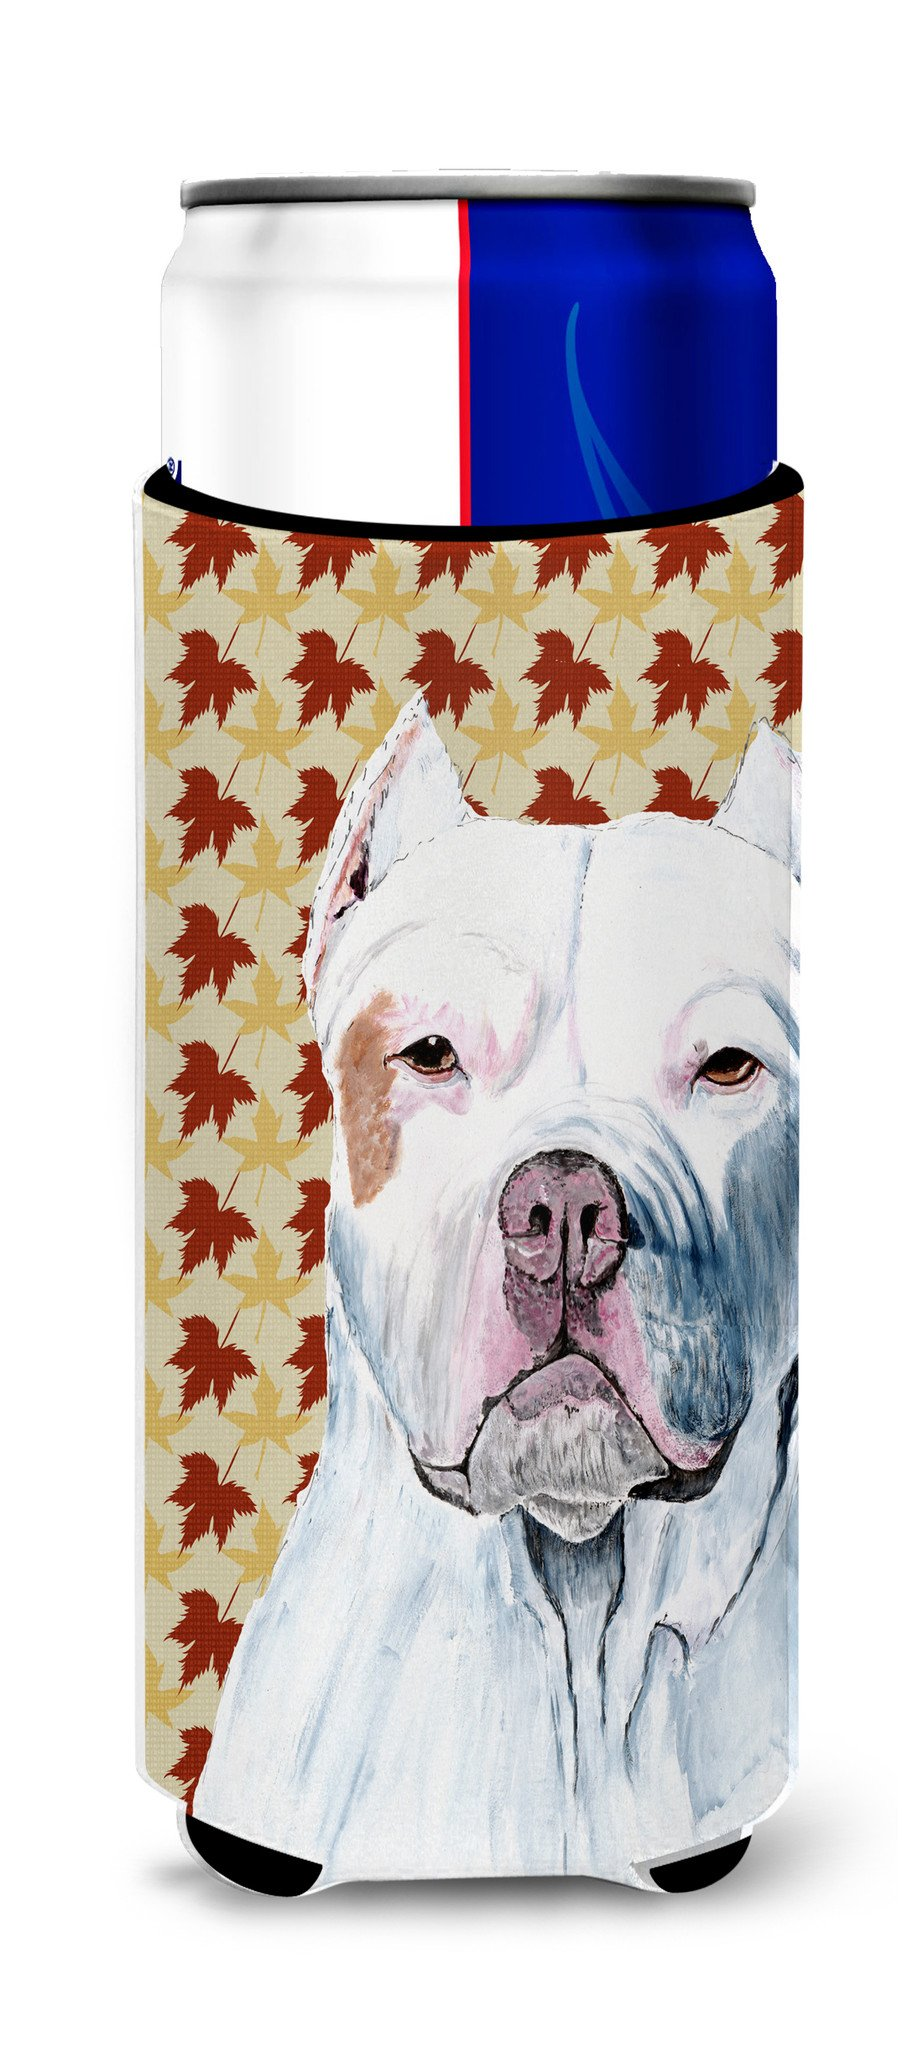 Pit Bull Fall Leaves Portrait Ultra Beverage Insulators for slim cans SC9221MUK by Caroline's Treasures